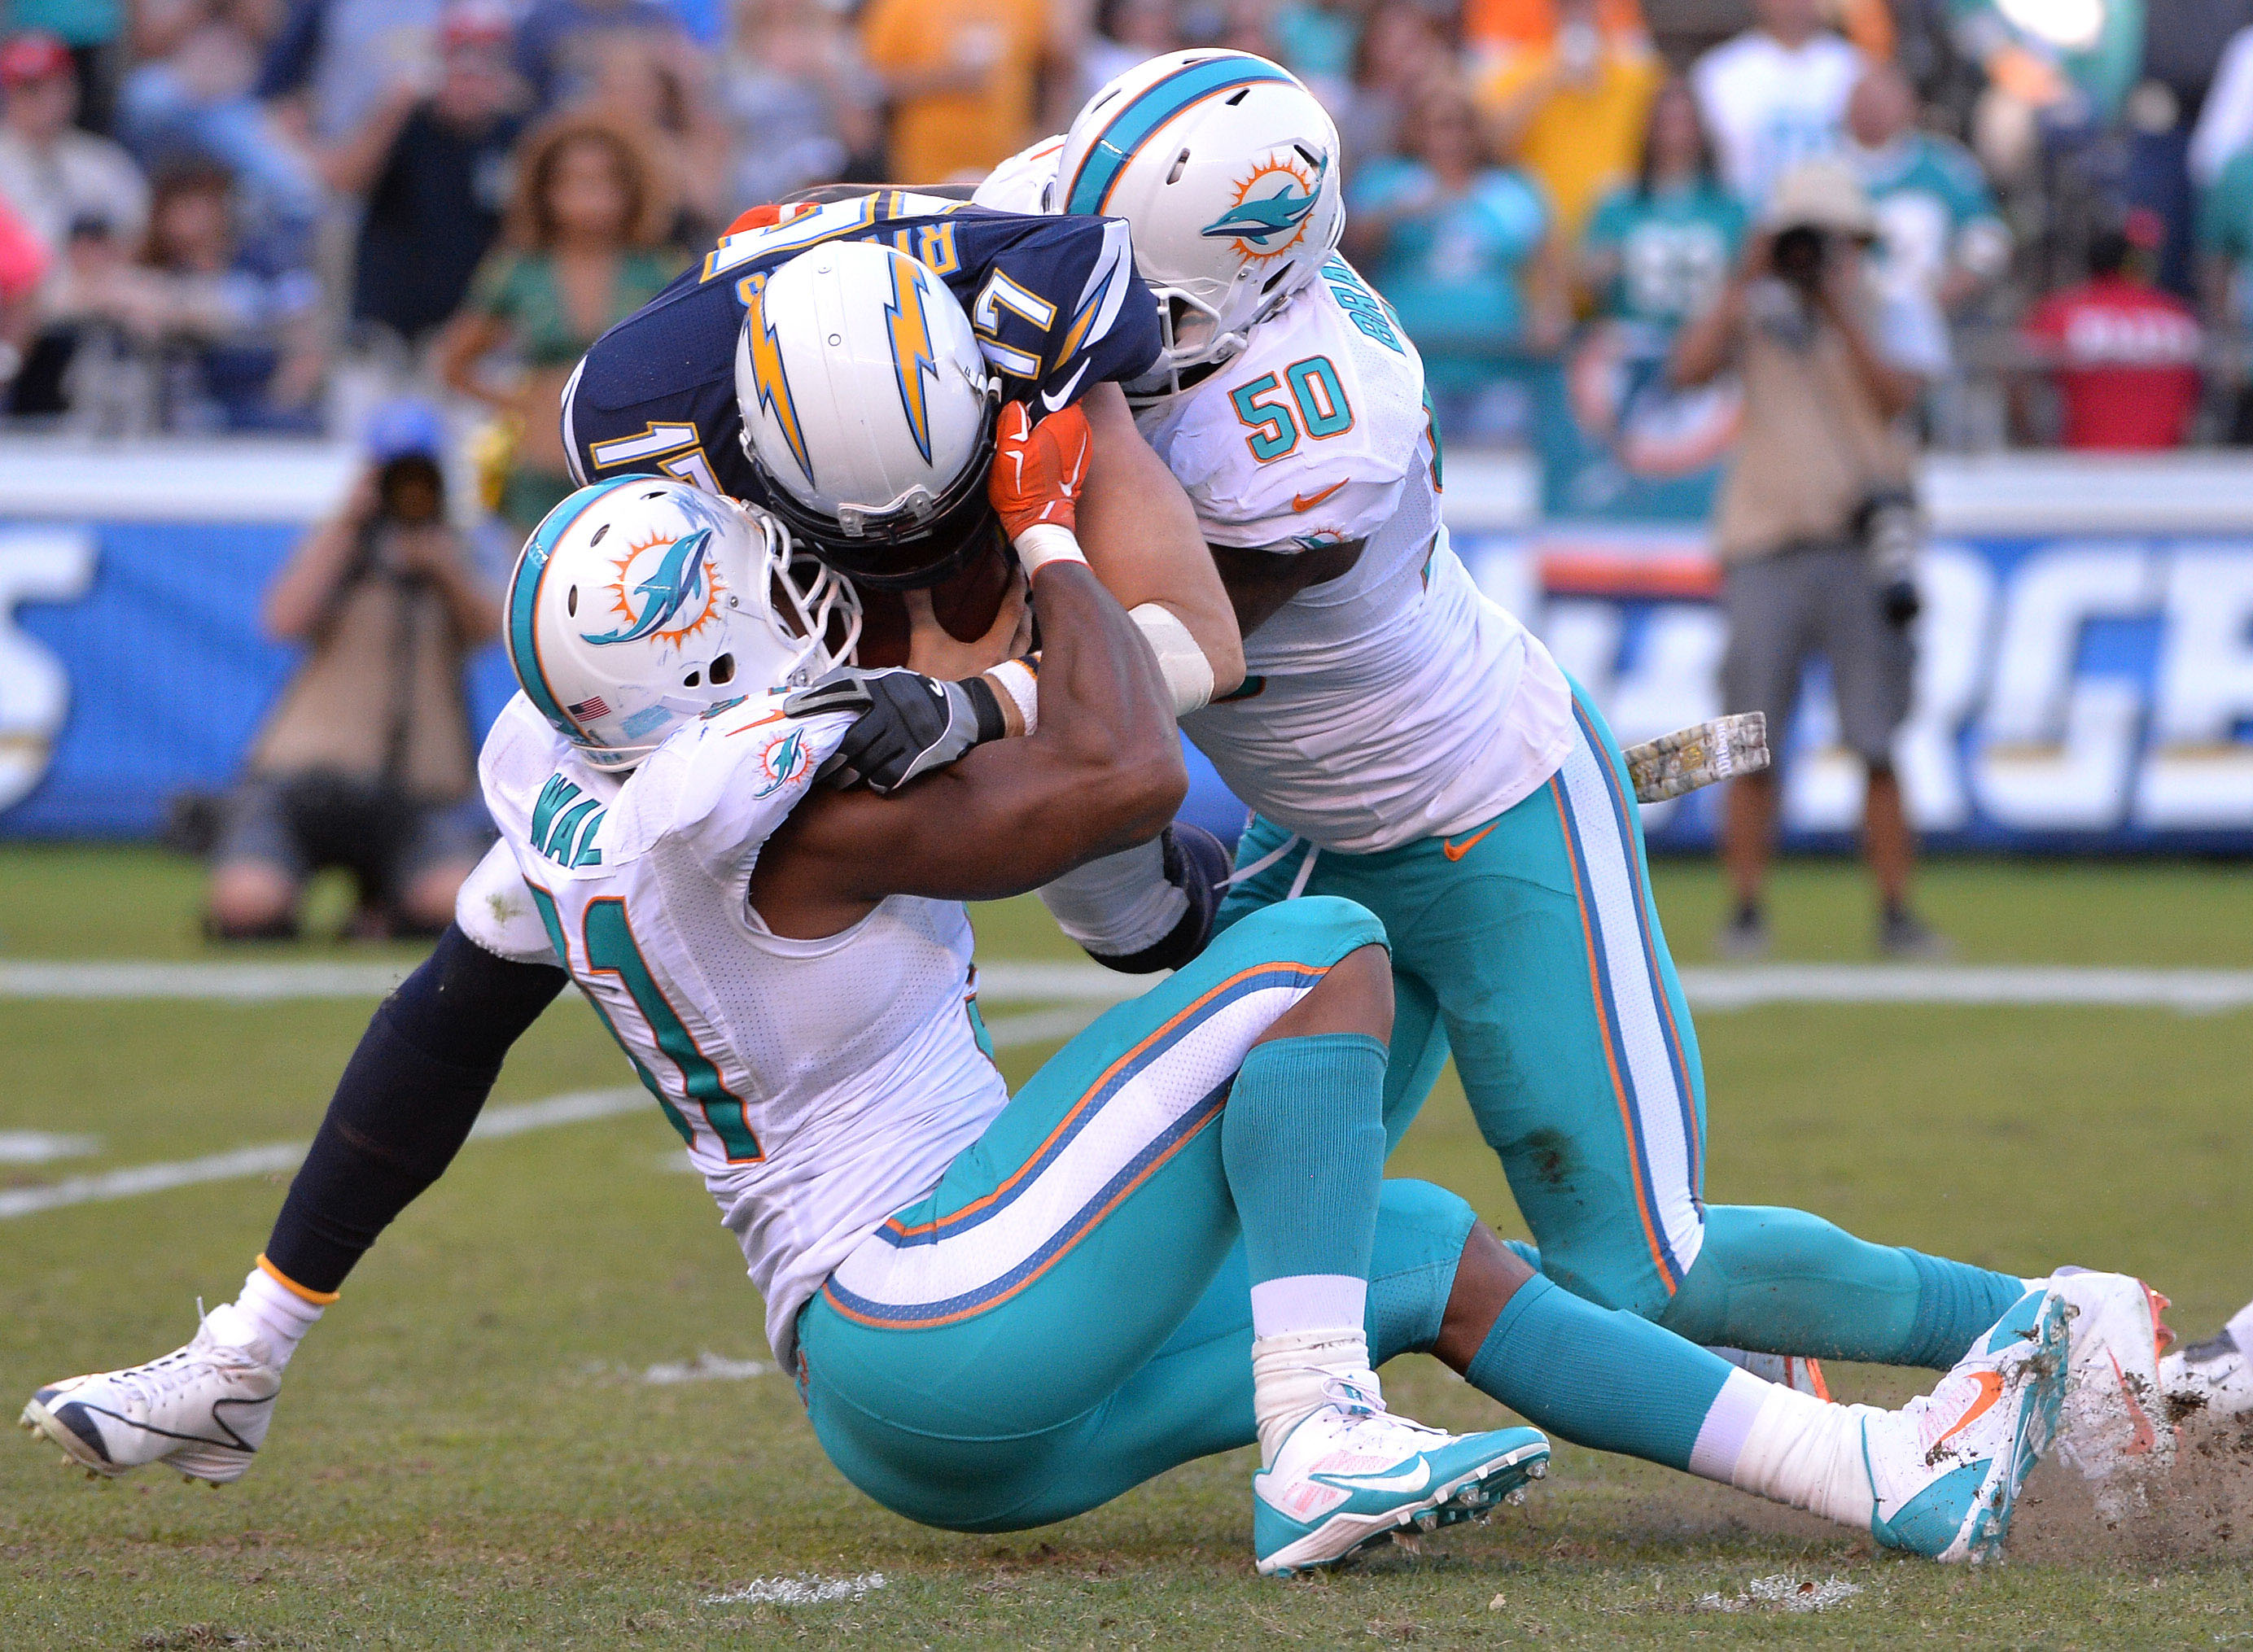 9683229-nfl-miami-dolphins-at-san-diego-chargers